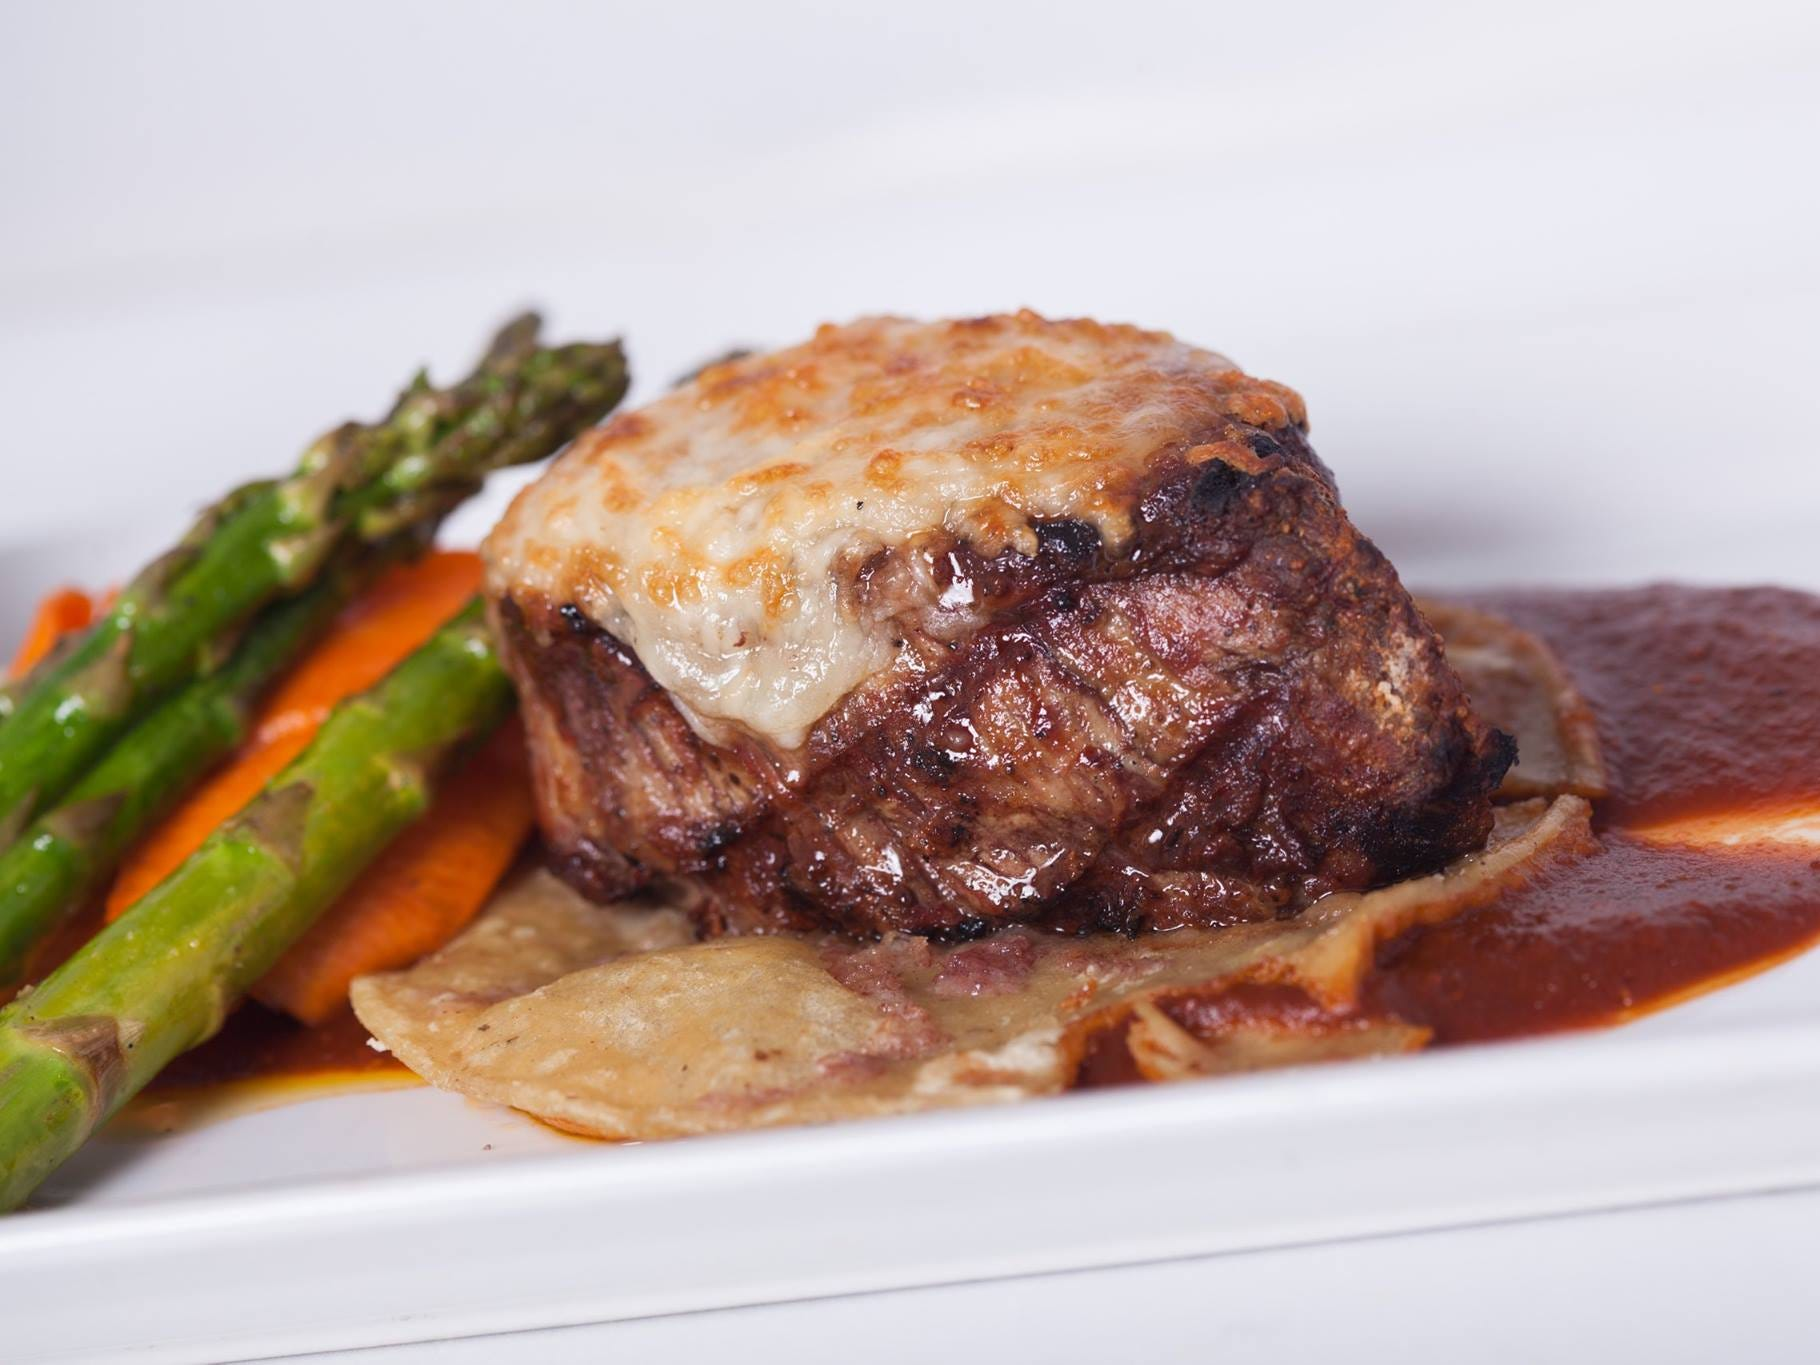 Grilled filet migńon covered with melted manchego cheese, served on a tortilla with potatoes and fresh vegetables.